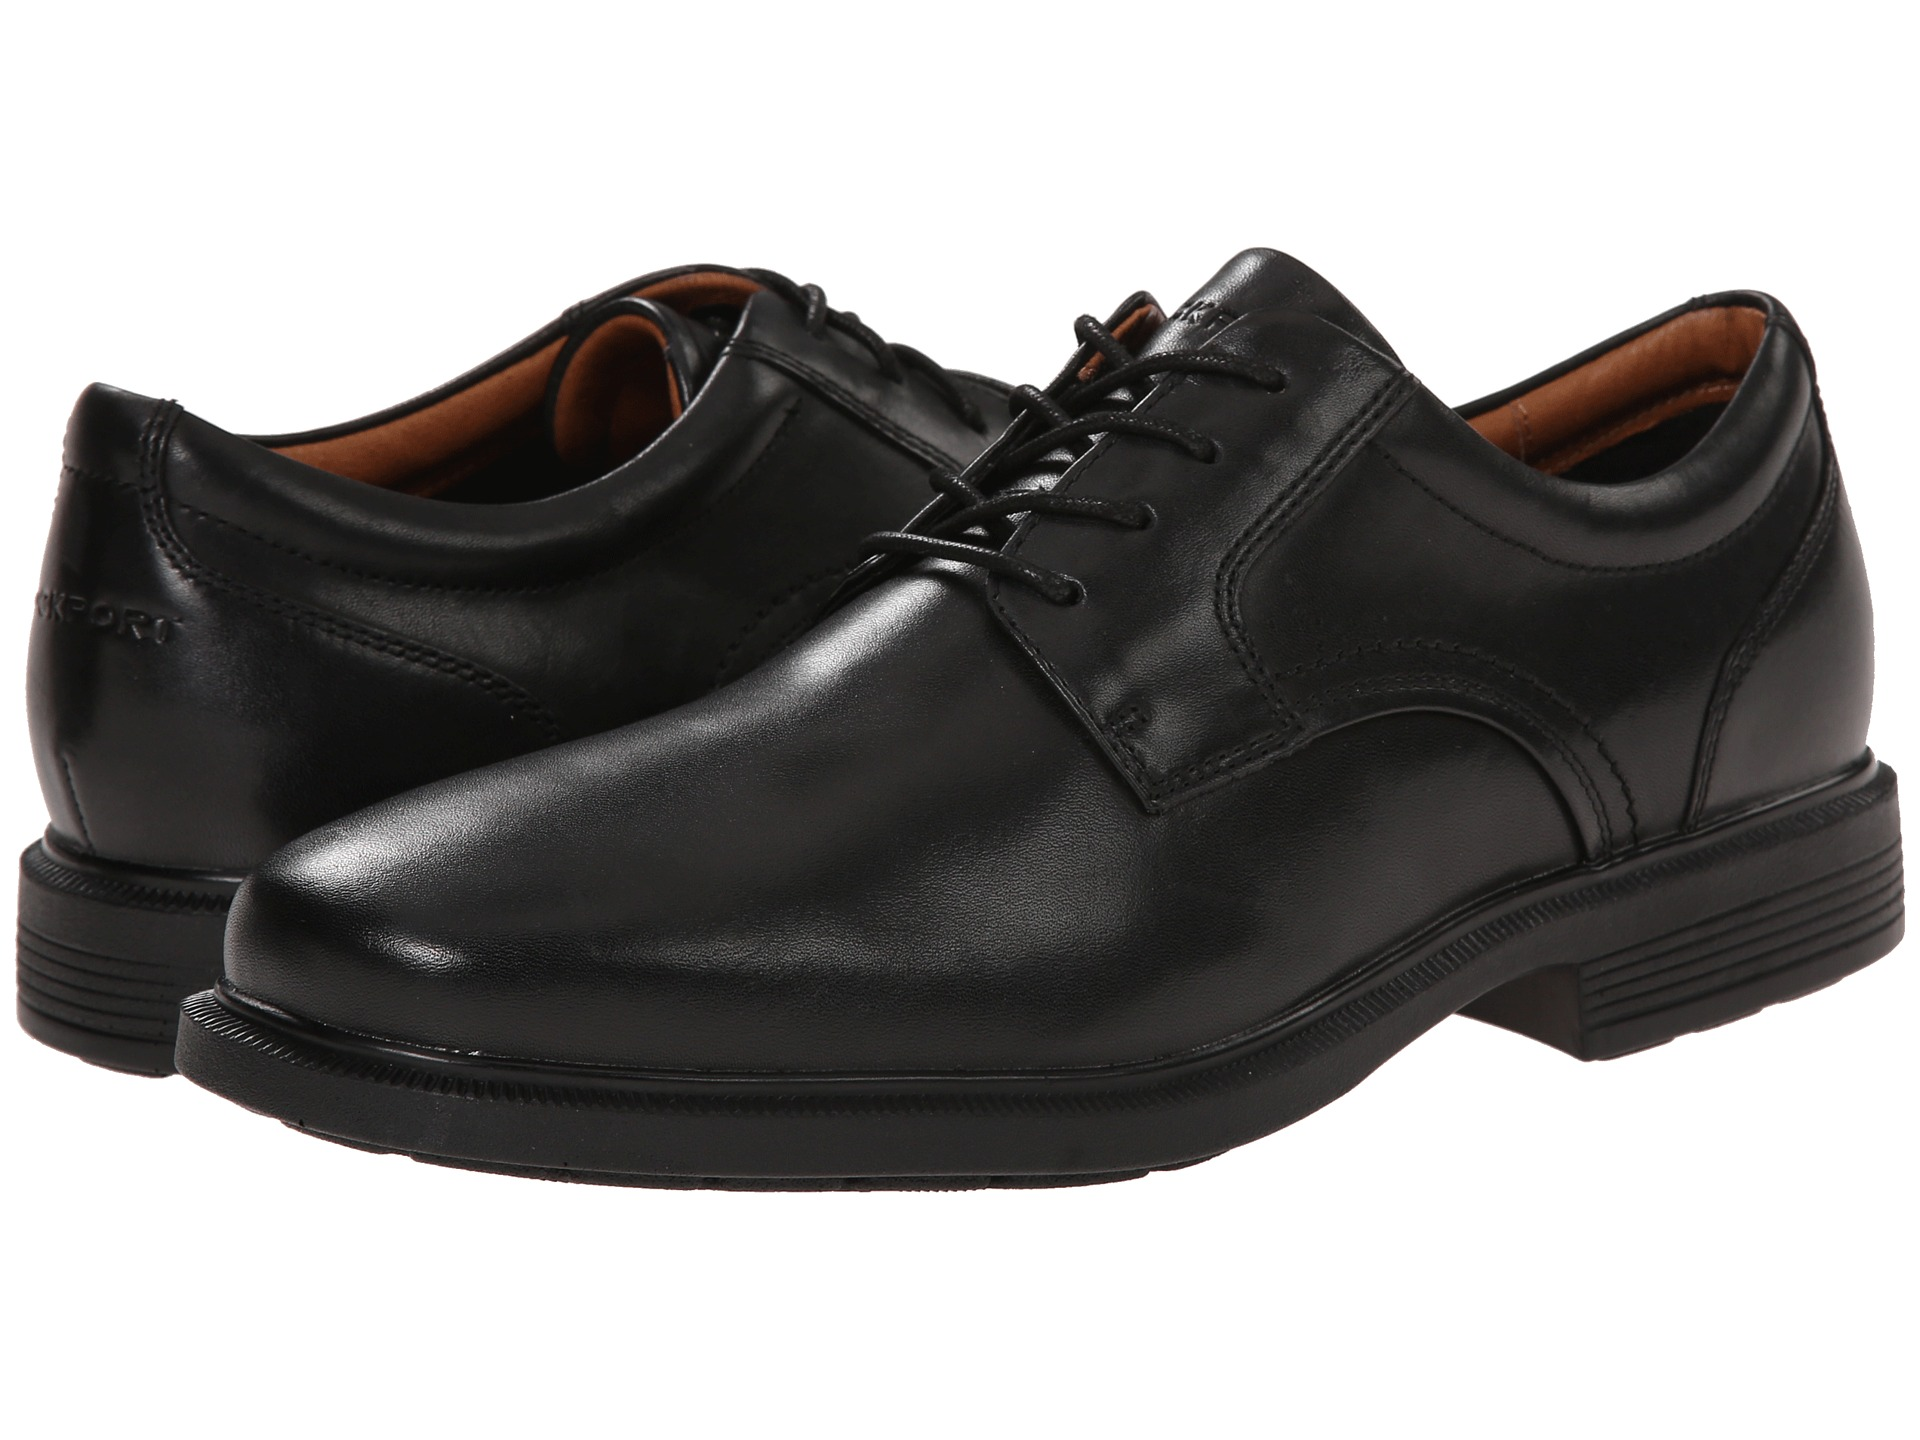 Rockport As Dress Shoes